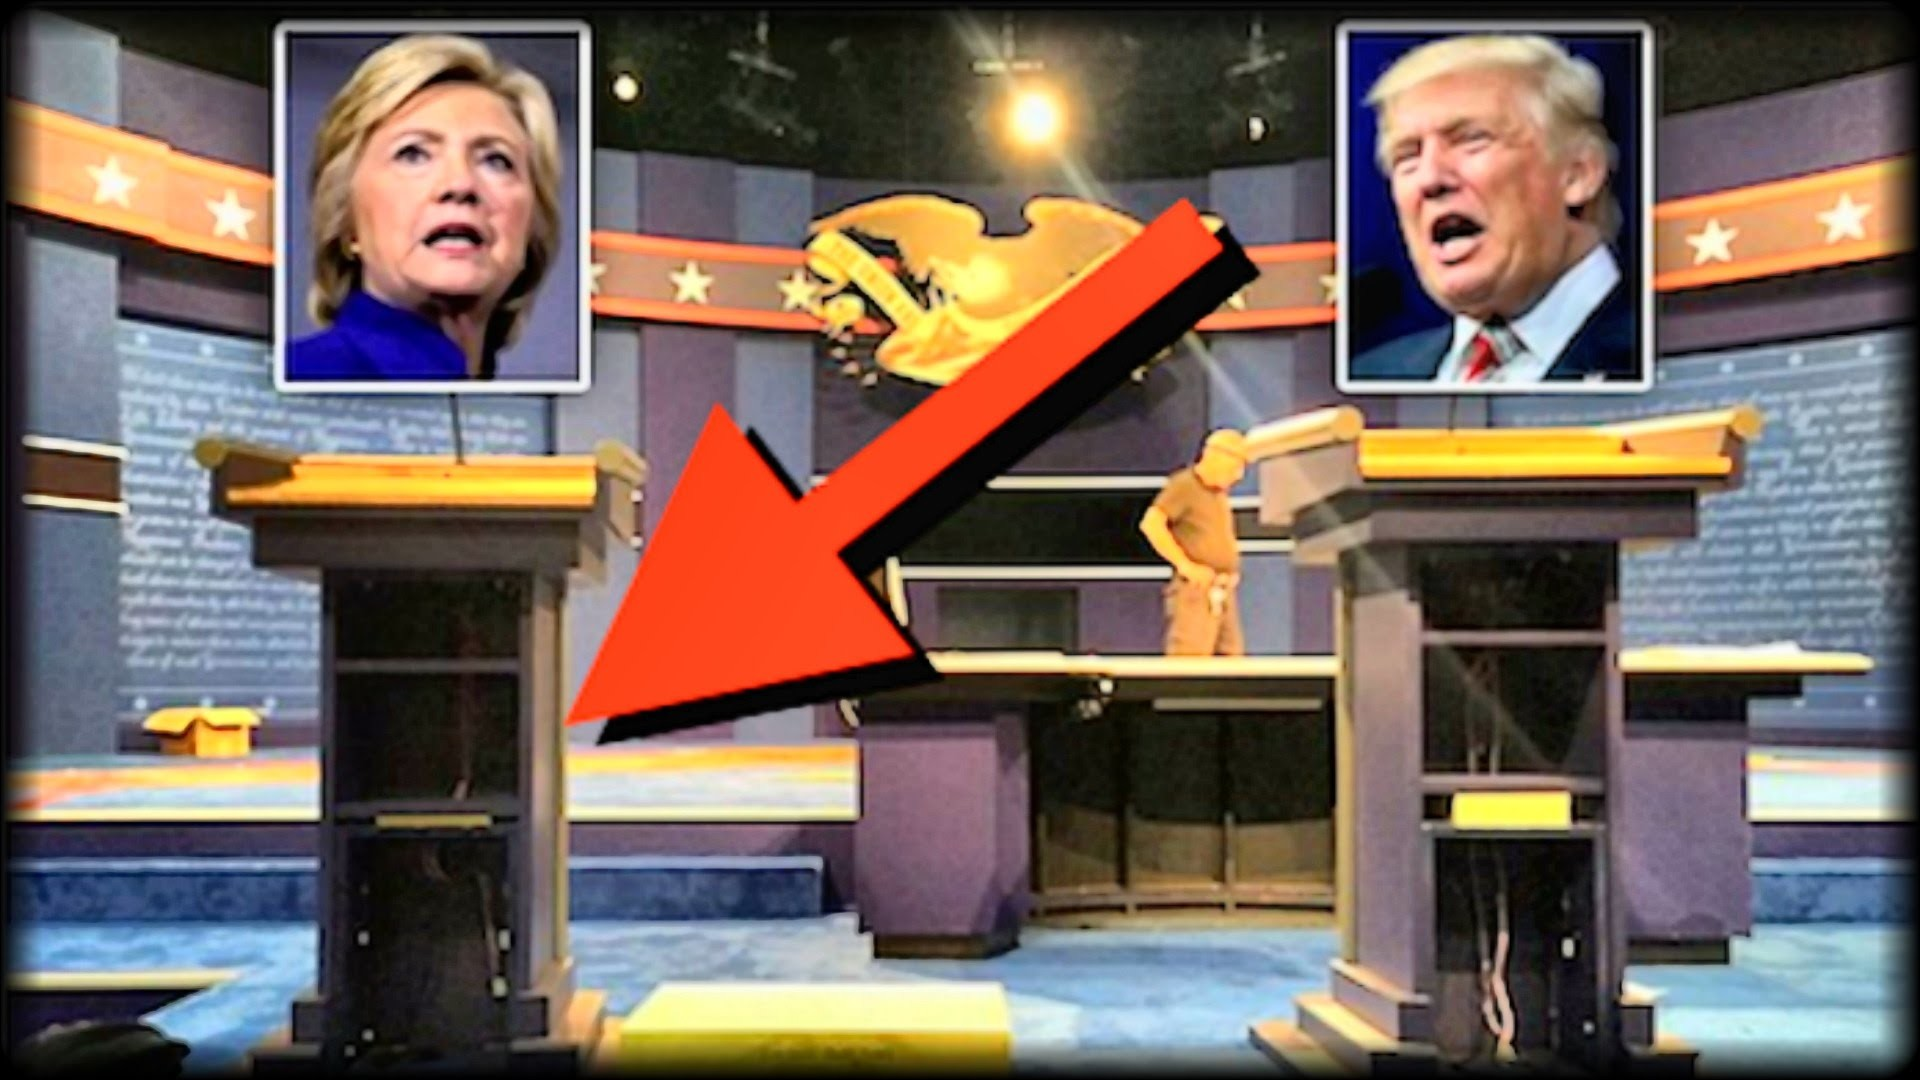 BREAKING: EVERY AMERICAN JUST NOTICED SOMETHING HUUUUGE ABOUT HILLARY  CLINTON'S DEBATE PODIUM! – YouTube